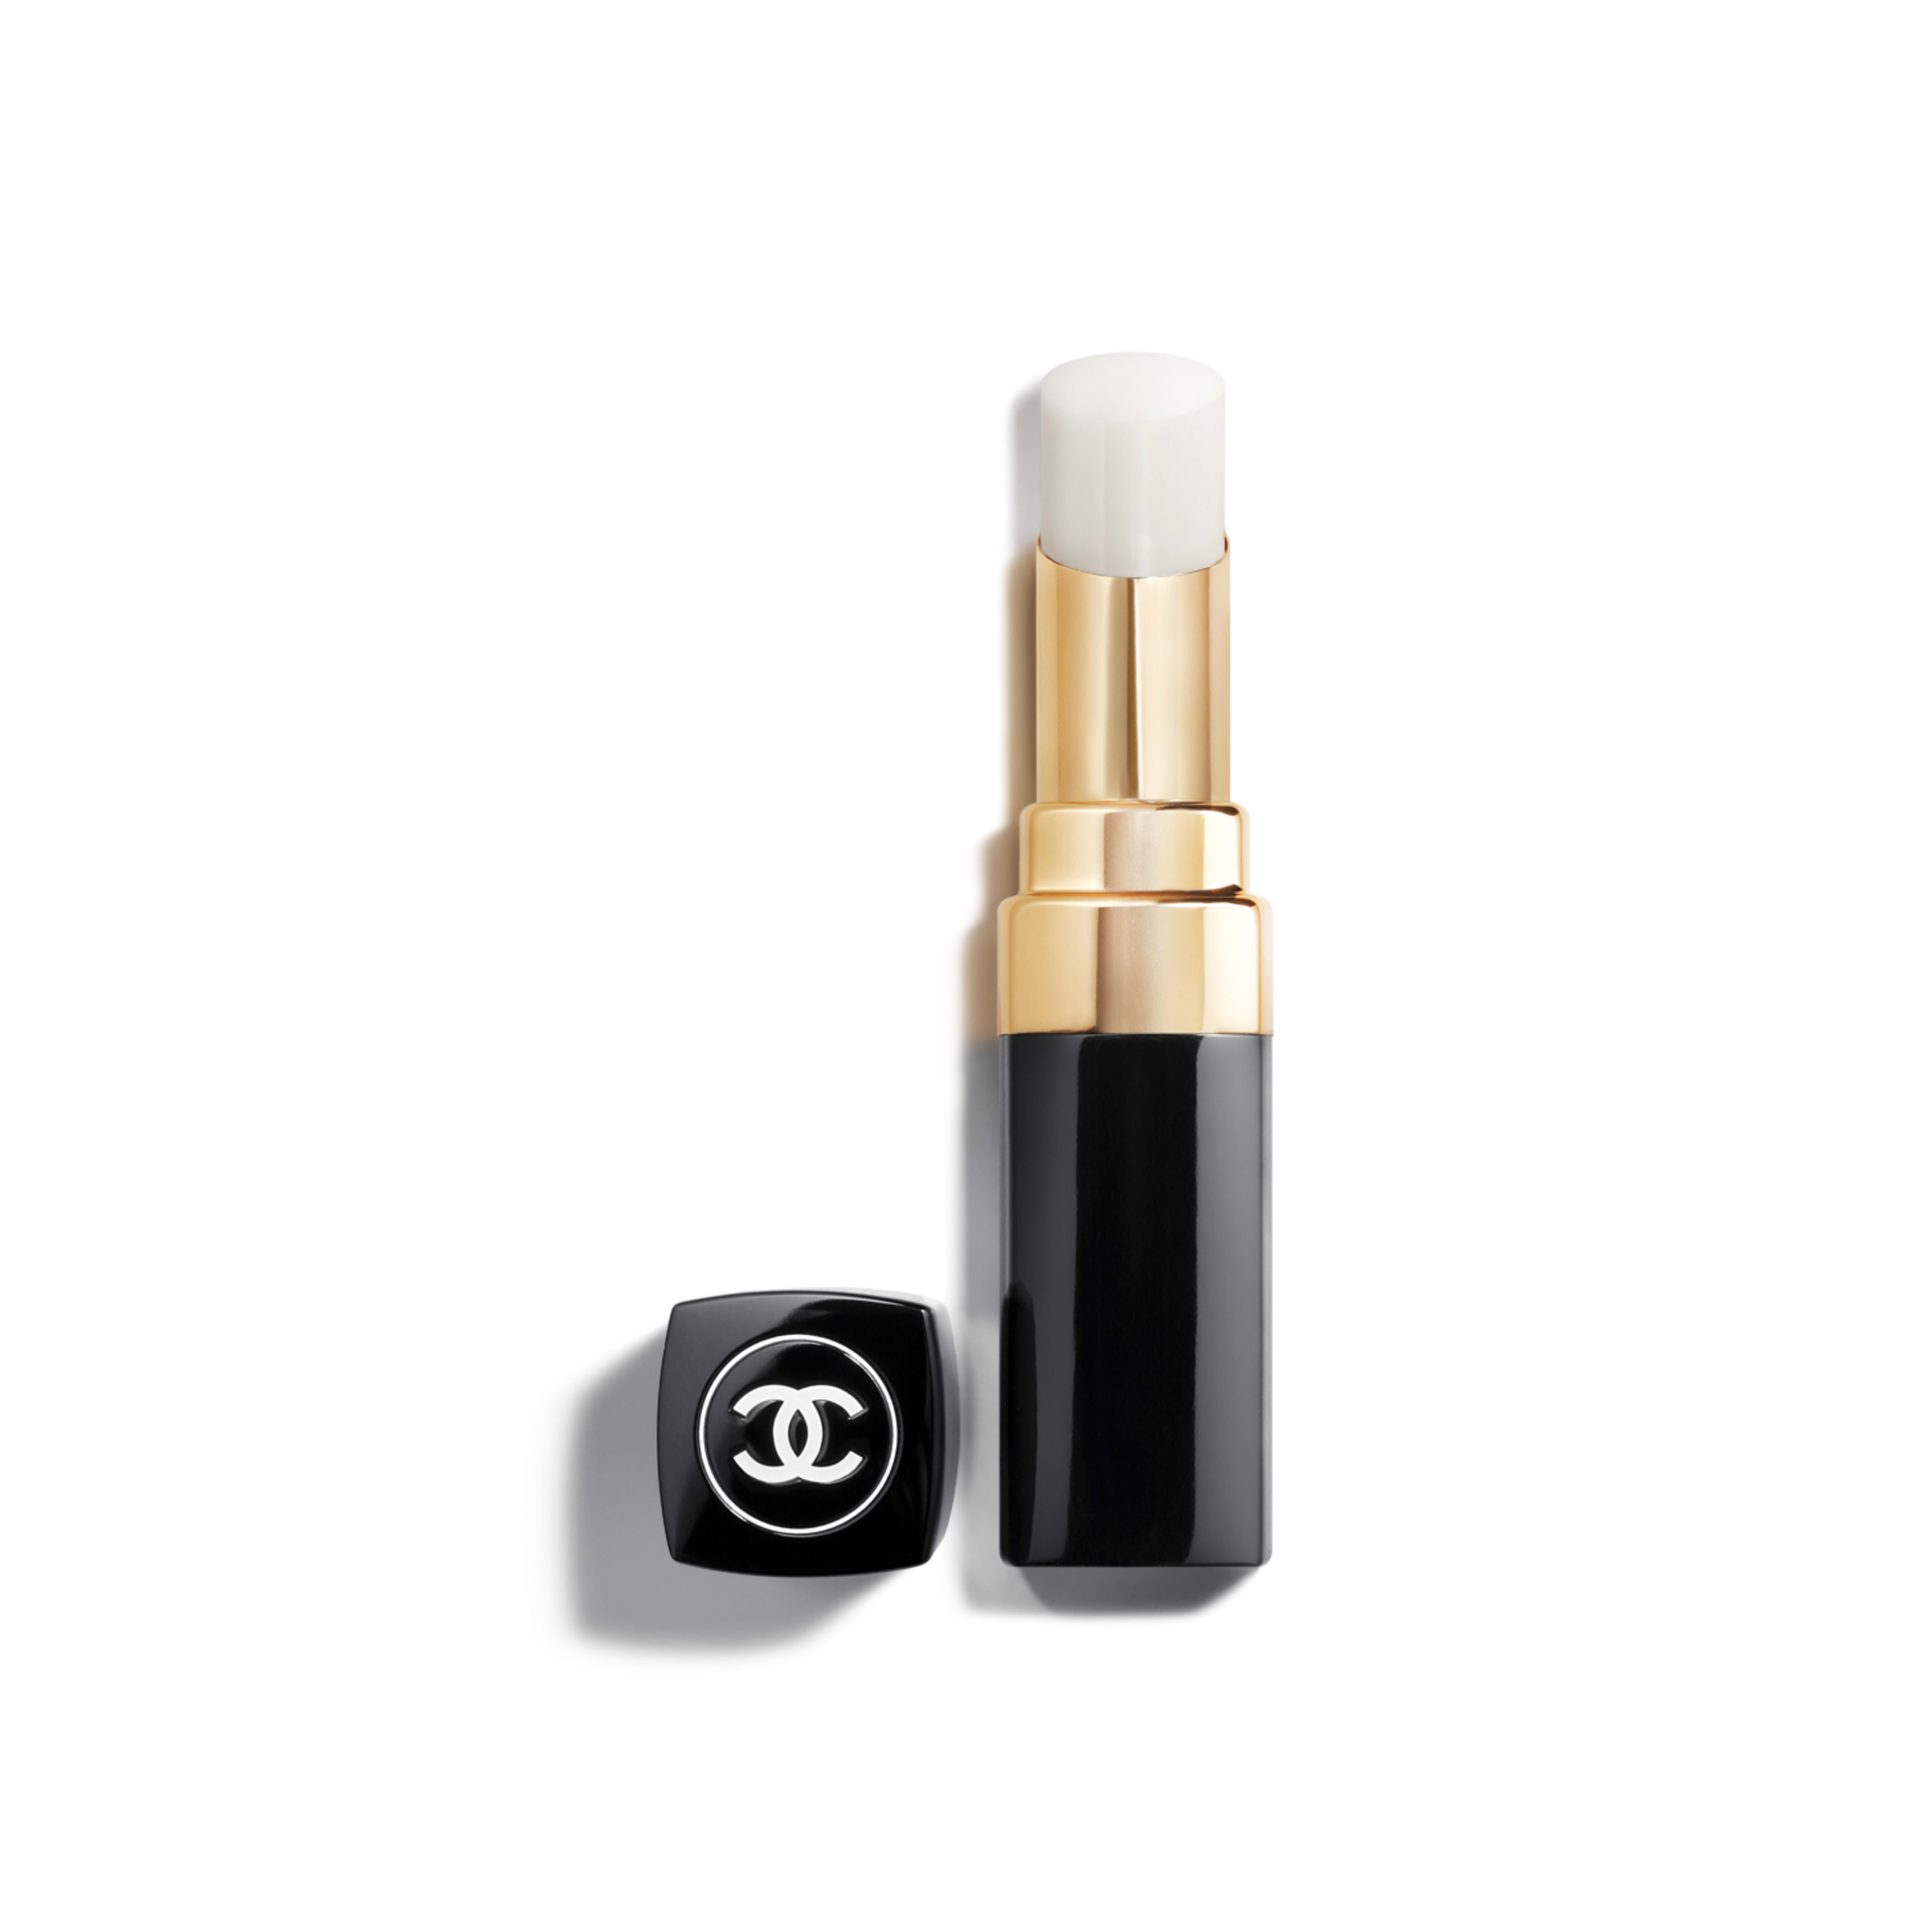 Lip Care Makeup Chanel Ice Rouge Coco Baume Hydrating Conditioning Balm Ref 171900